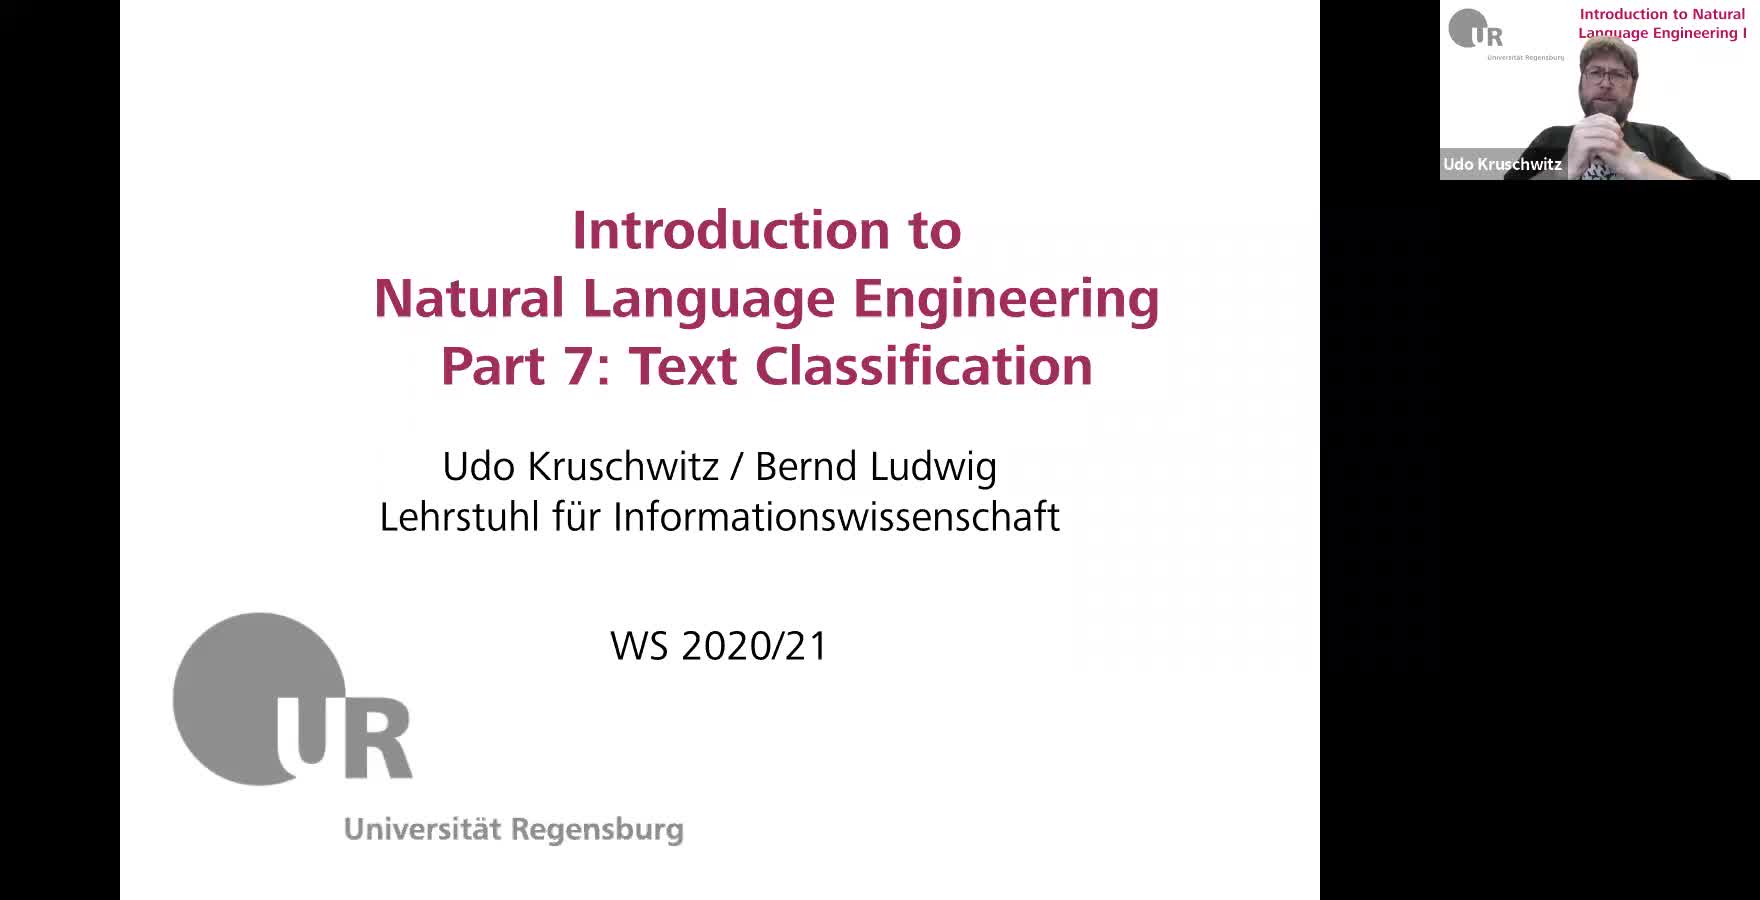 Introduction to Natural Language Engineering 1 / Informationslinguistik 1 - Lecture 7 (Text classification / Textklassifikation)